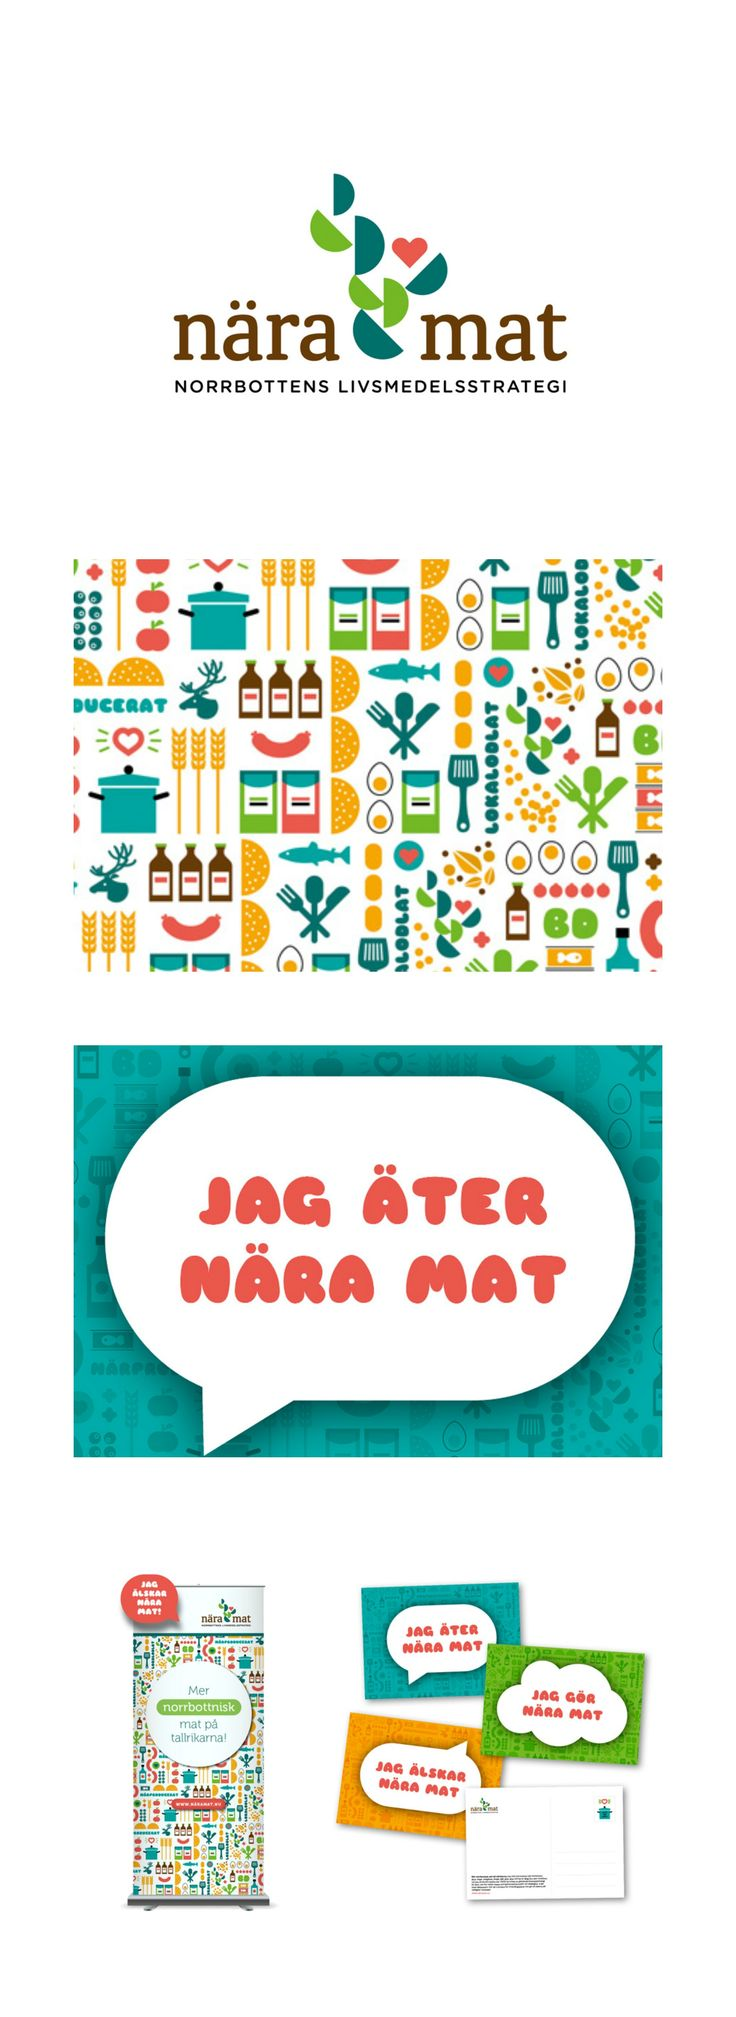 Web Design And Pattern Design to Nära mat.  In a partnership with Smeder Ord & Tanke, we worked with Nära Mat, Norrbotten food strategy - a project run by LRF Norrbotten, County Administrative, Norrbotten County Council. We have designed the logo, visual identity and design as well as produced invitations, Web and presentation materials.